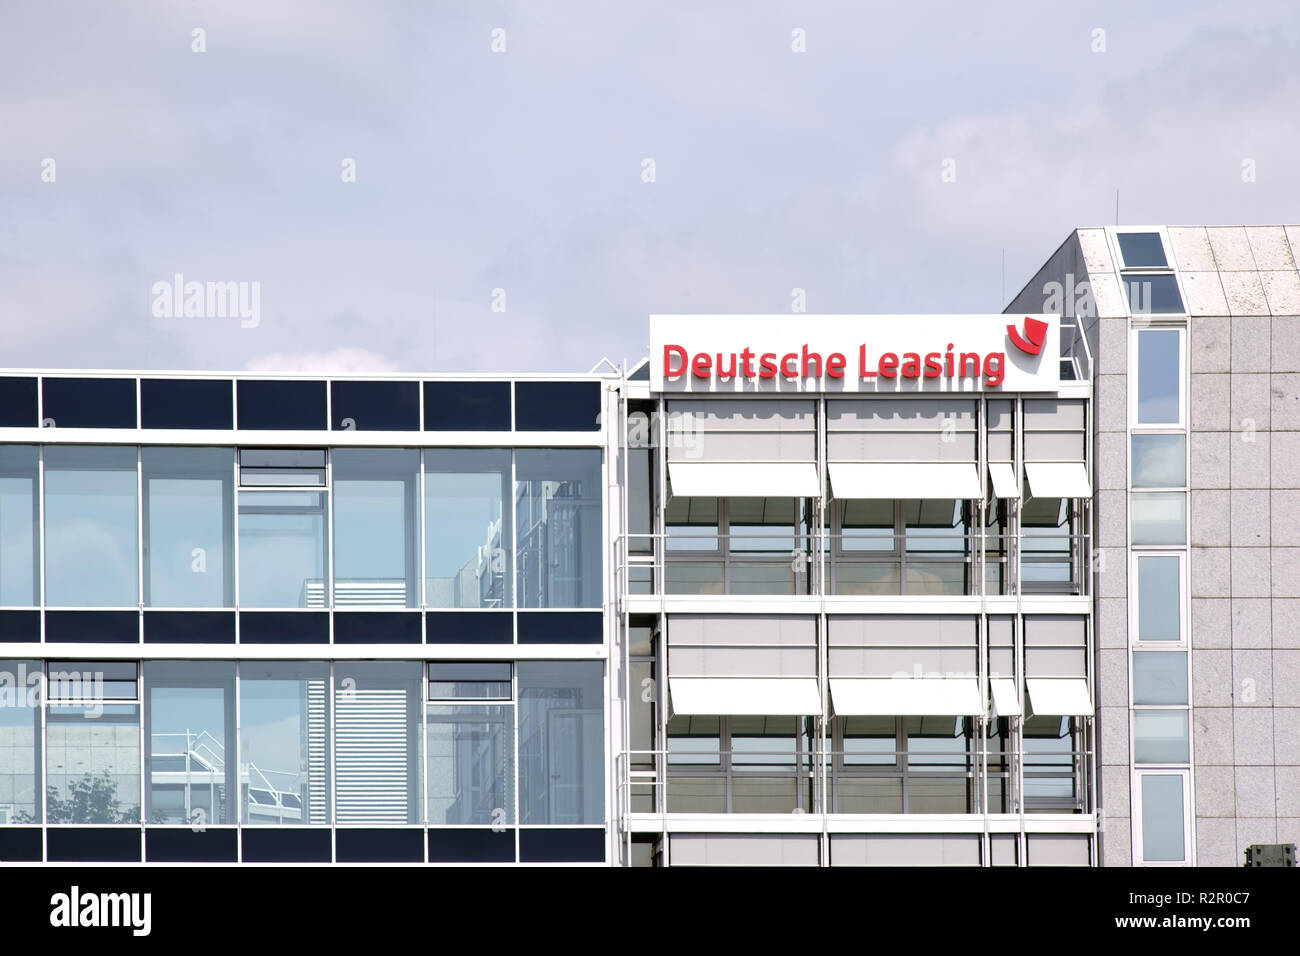 Facade of the corporate headquarters of Deutsche Leasing Finanz AG in Bad Homburg - Stock Image